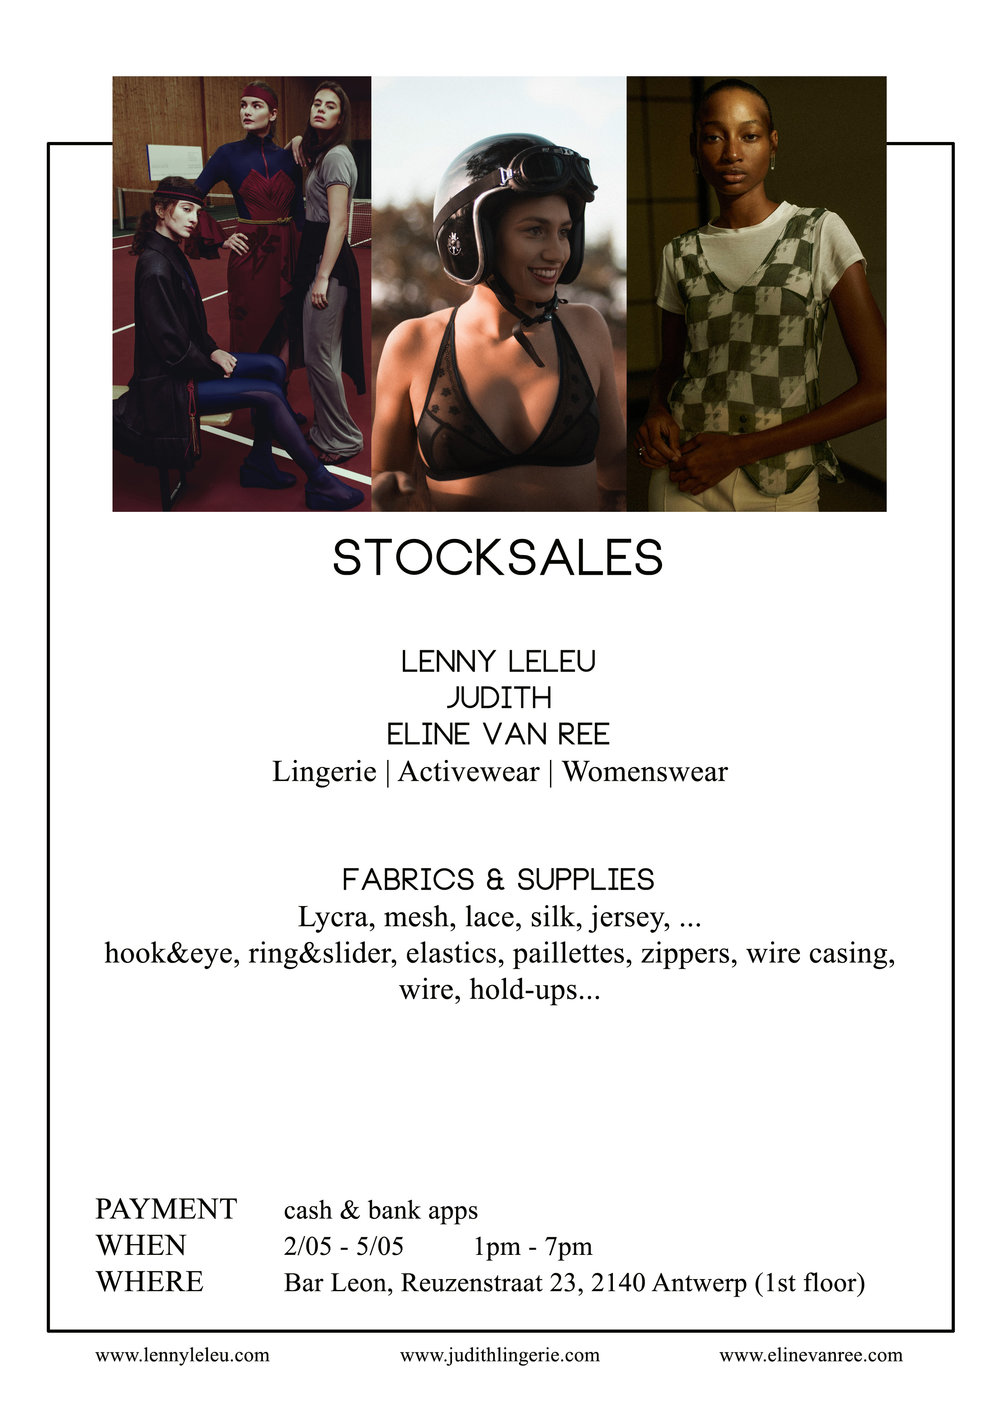 Judith flyer stocksale.jpg